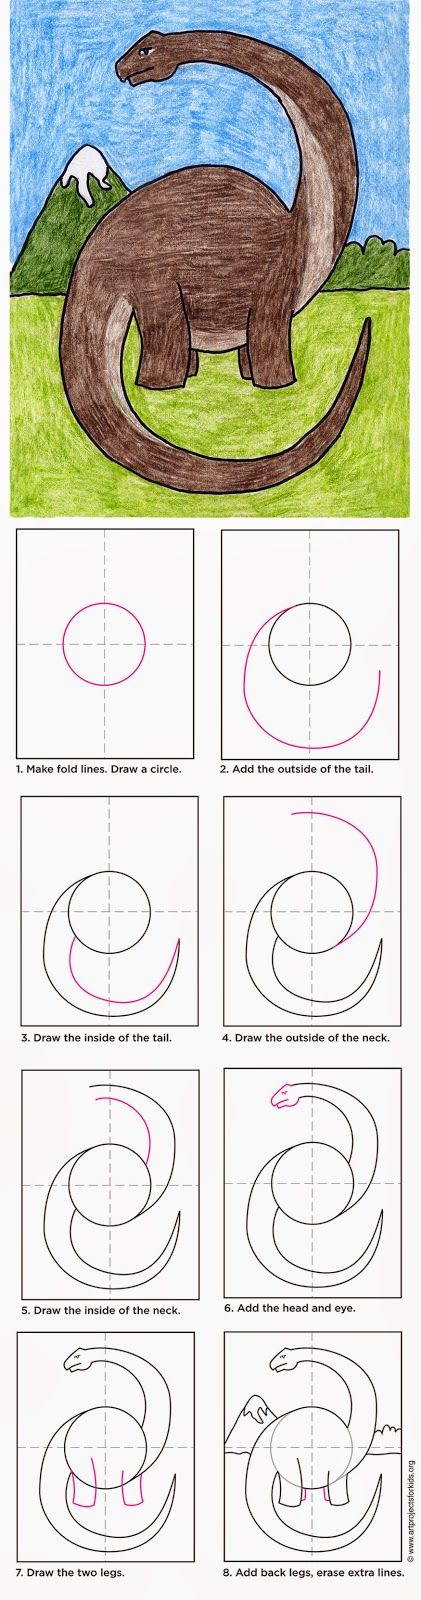 How to Draw a Diplodocus - ART PROJECTS FOR KIDS